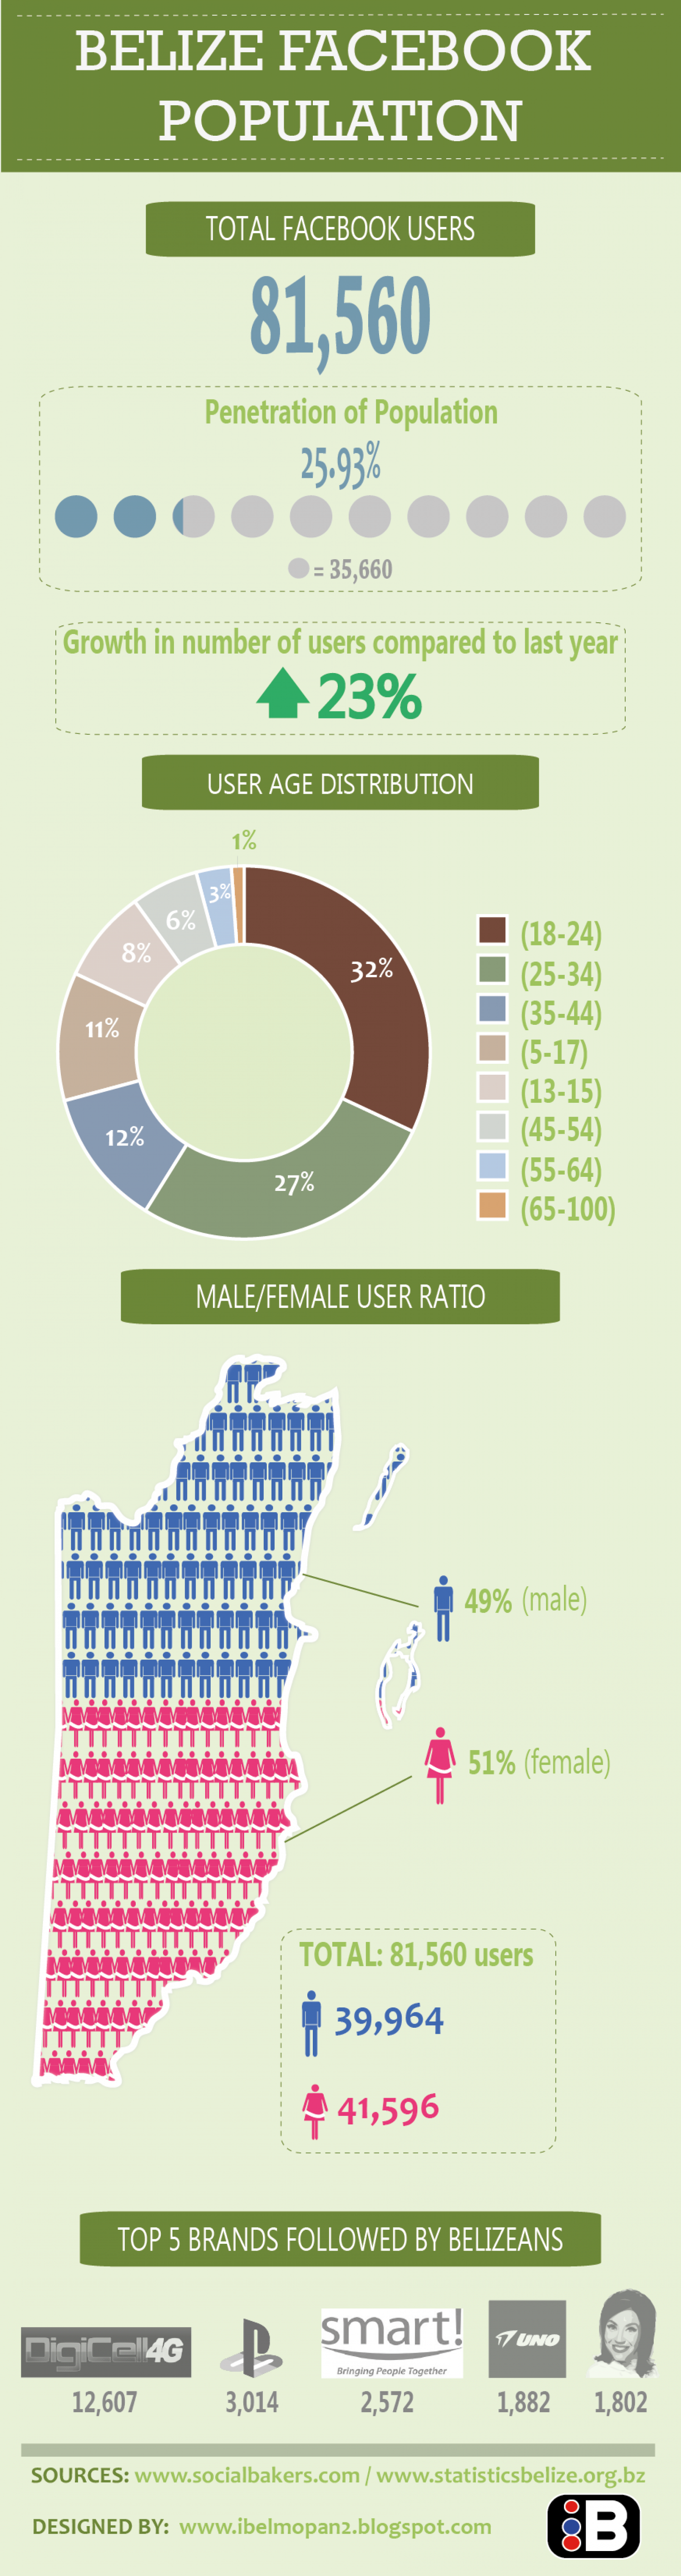 Belize Facebook Population 2013 Infographic